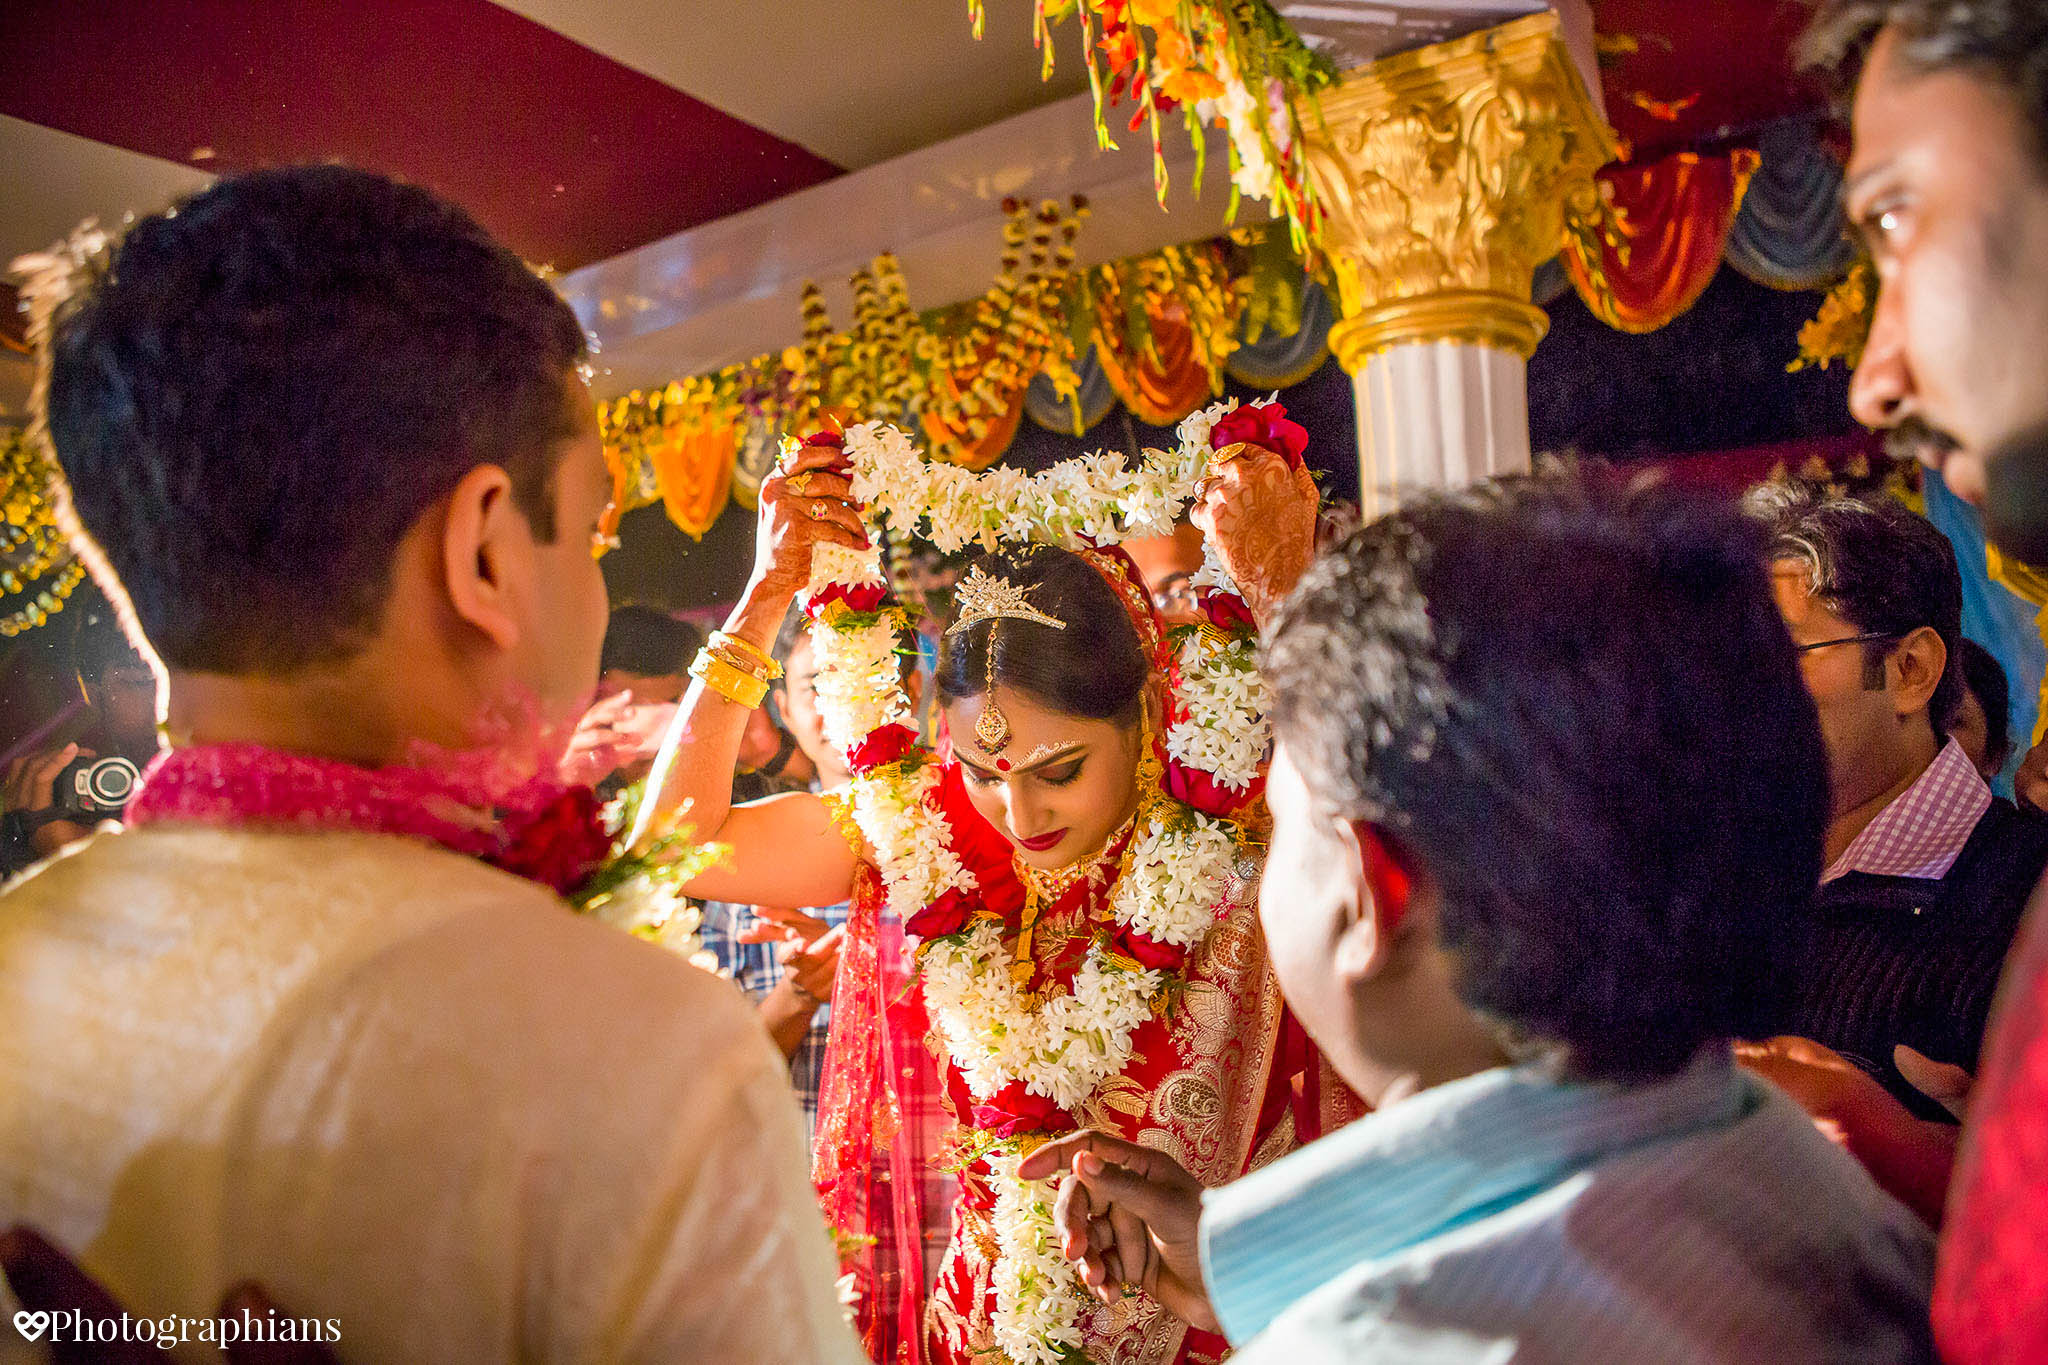 Photographians_Indian_Wedding_Durgapur_042